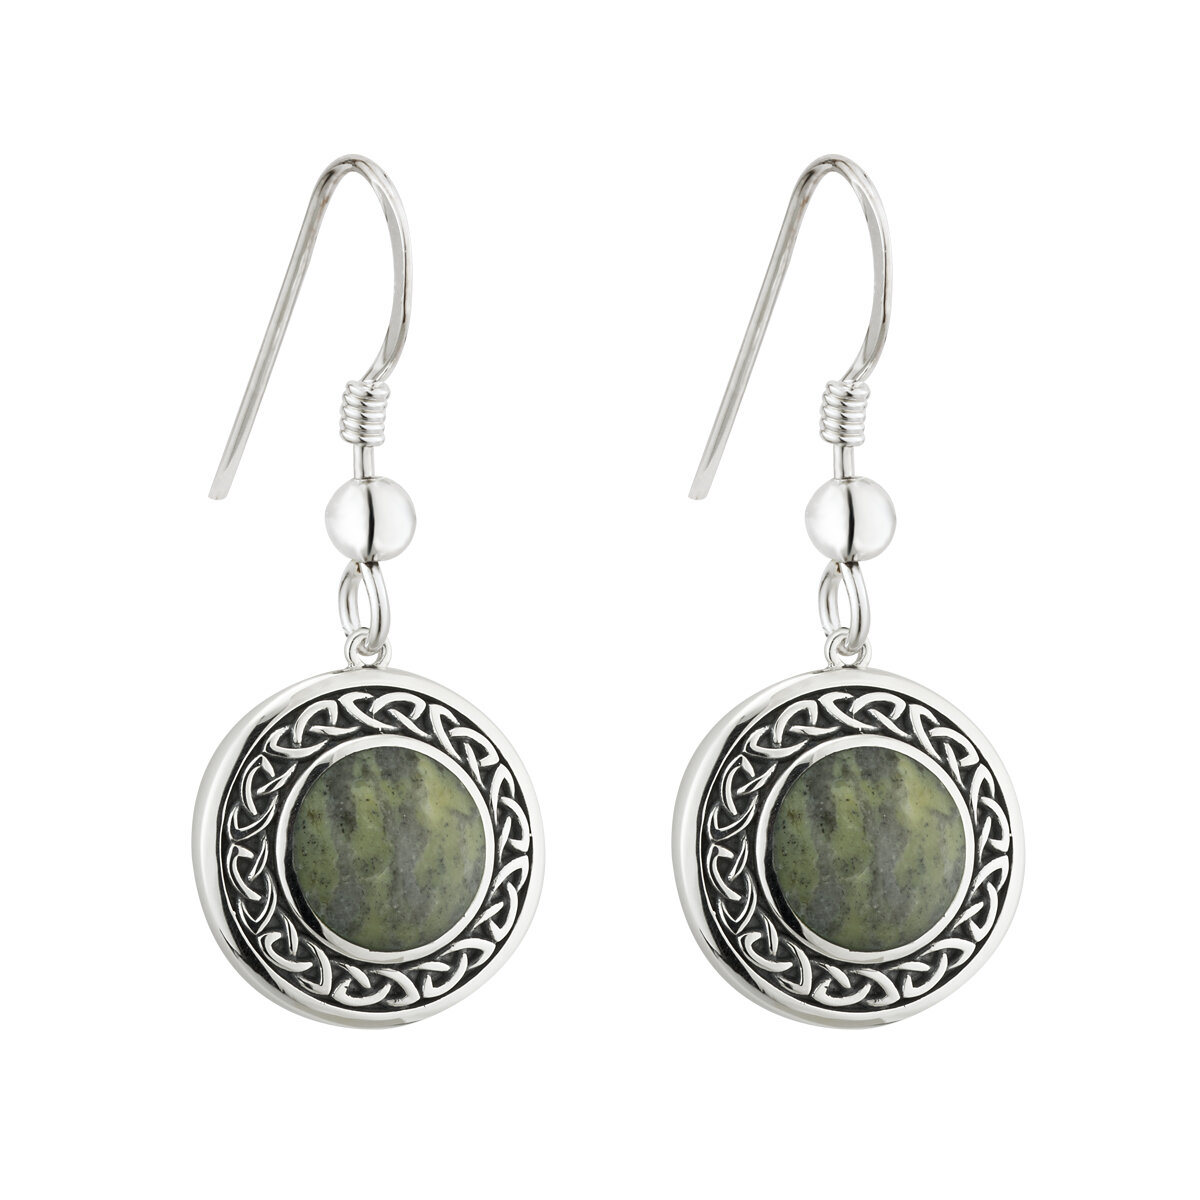 sterling silver connemara marble round celtic drop earrings s33772 from Solvar